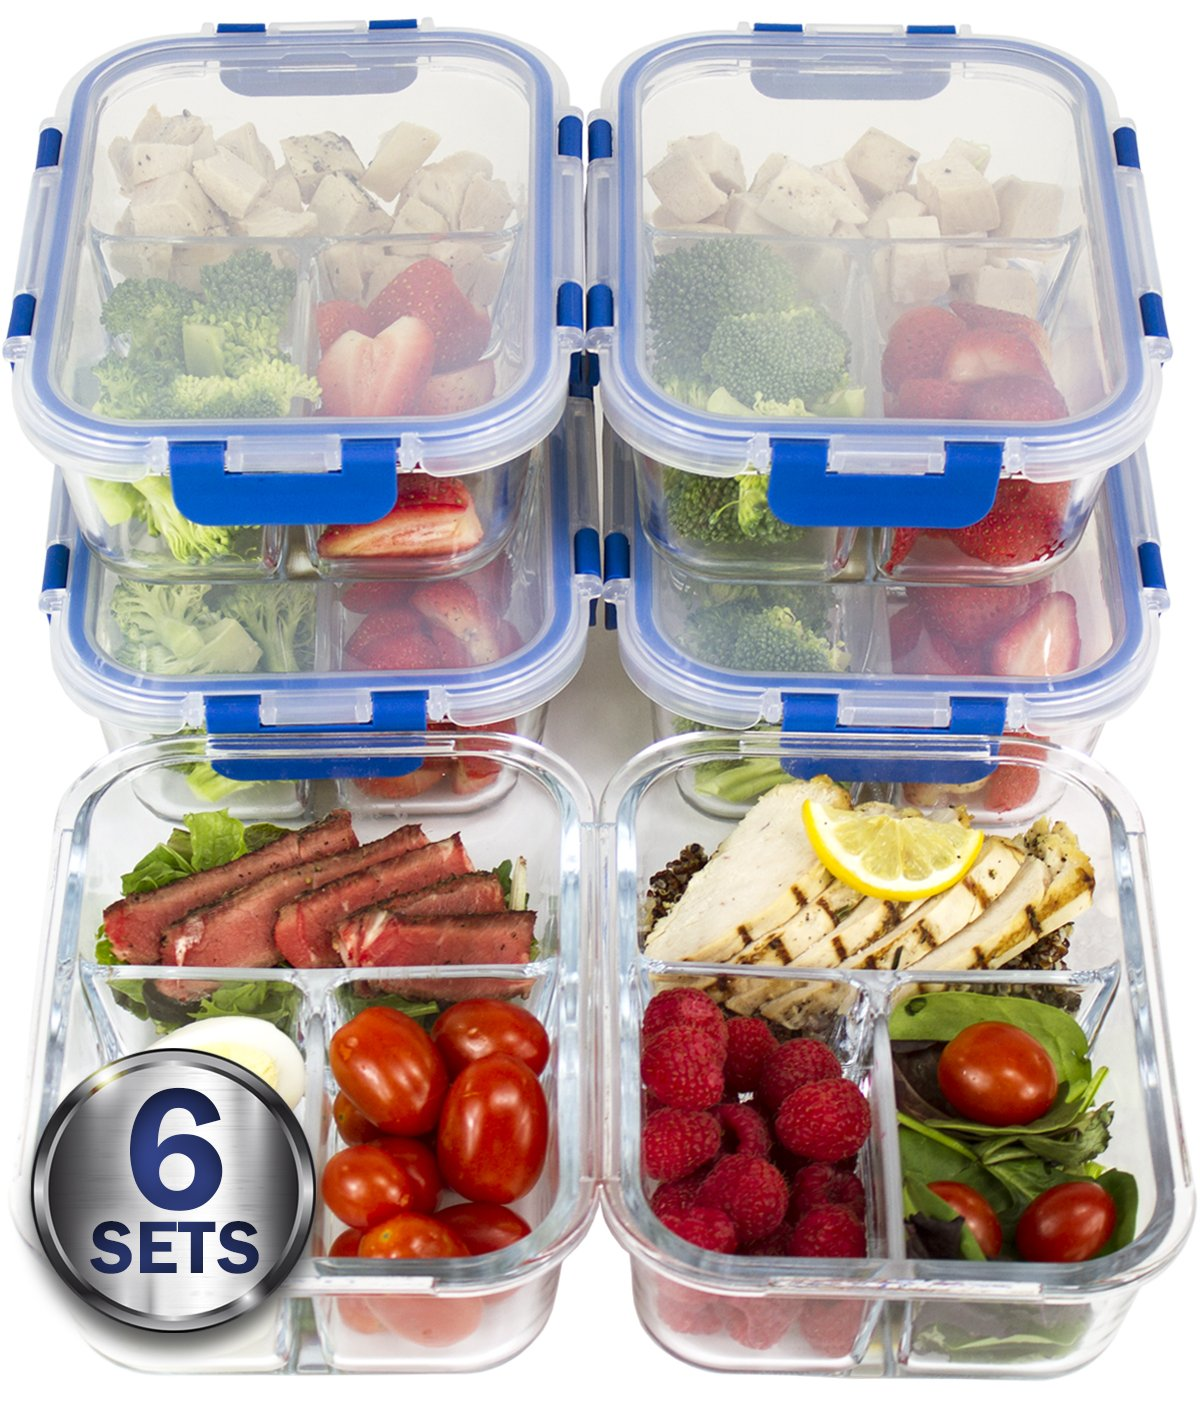 [LIFETIME LIDS 6 PACK] LARGE Premium 6 Sets 3 Compartment Glass Meal Prep Containers 3 Compartment with Snap Locking Lids, BPA-Free, Microwave, Oven, Freezer, Dishwasher Safe (4.5 Cup, 36 Oz,)